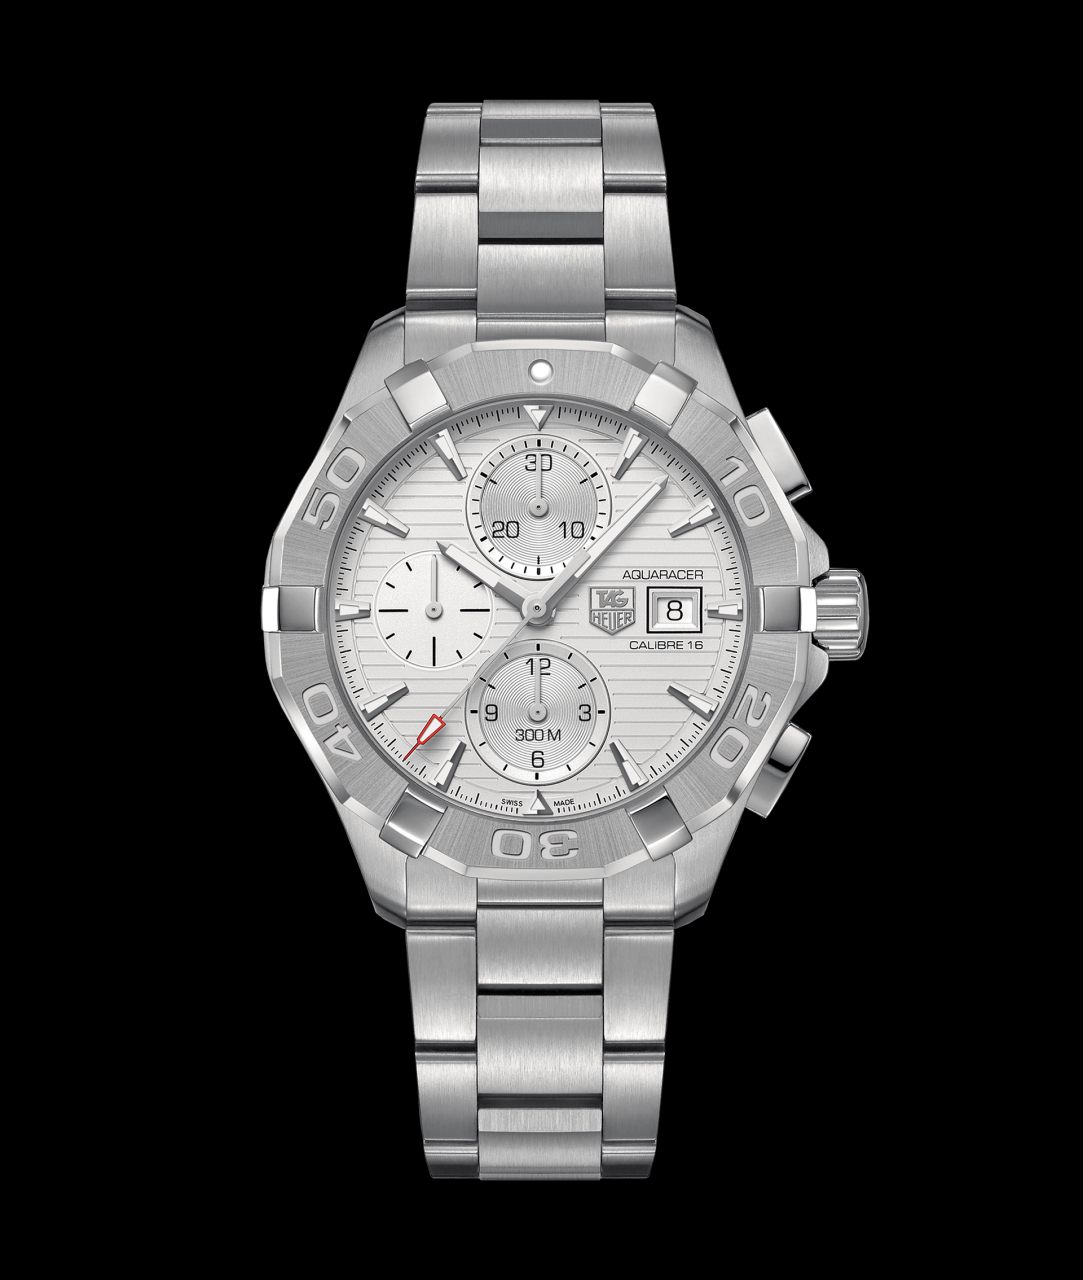 Aquaracer Calibre 16 Automatic Chronograph 300M - 43MM CAY2111.BA0927 TAG Heuer watch price